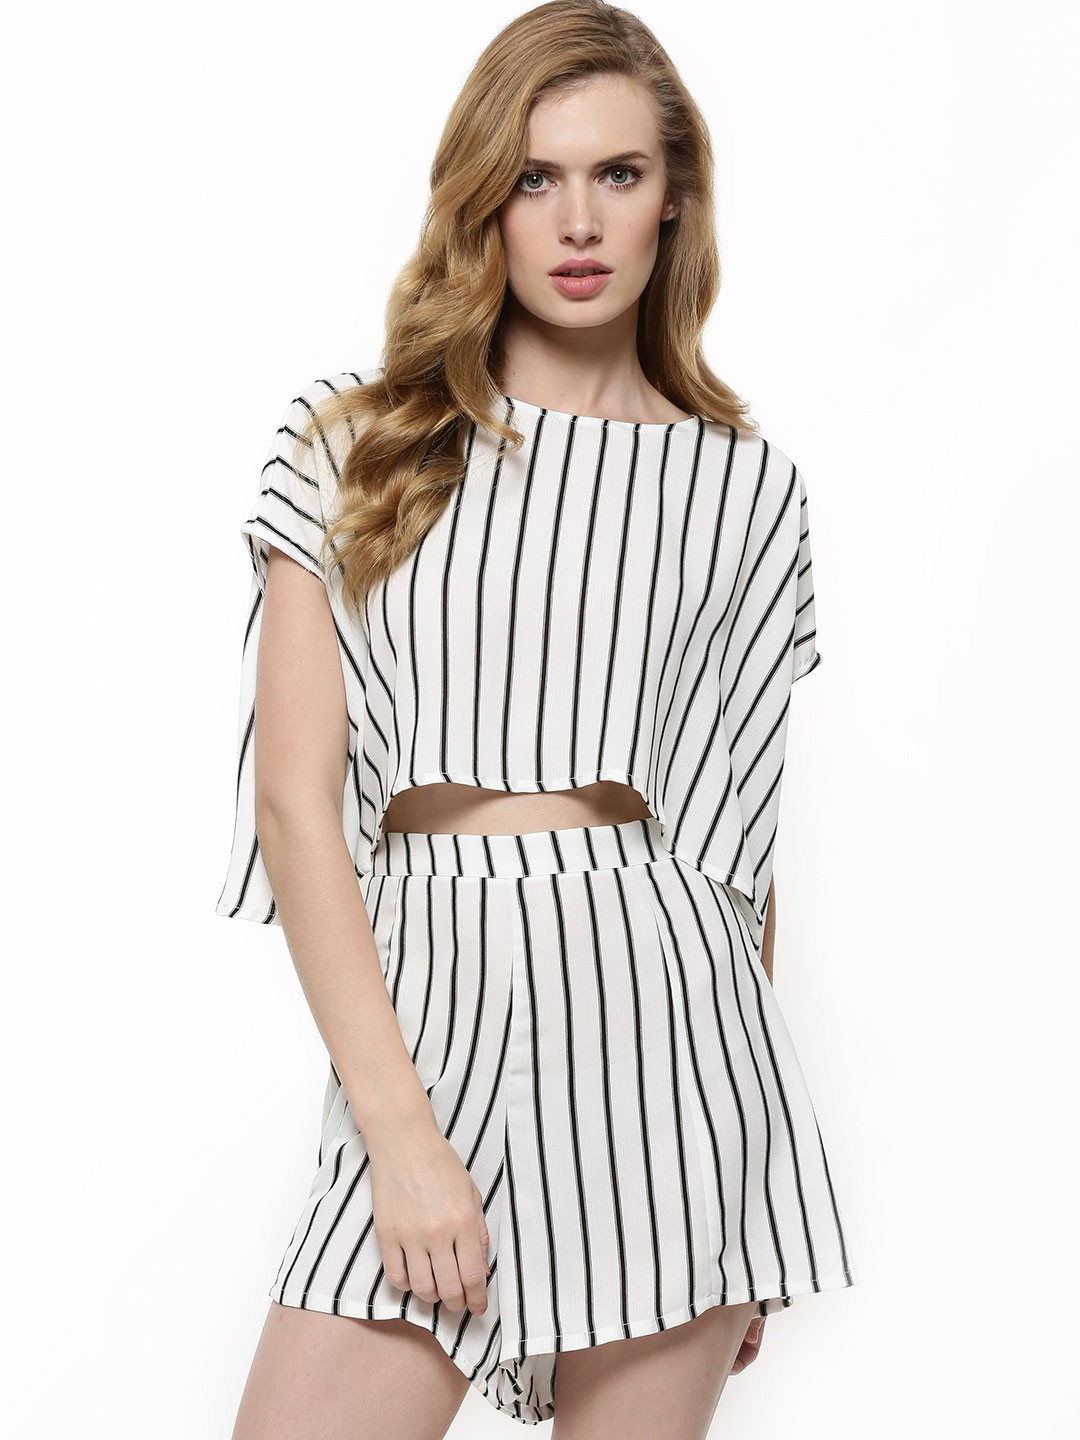 Buykud store offer various styles of clothes for women,you can buy loose dress,cute Free Shipping over $· New Arrivals Every Day· Safe E-shopping· Up to 15% Off.